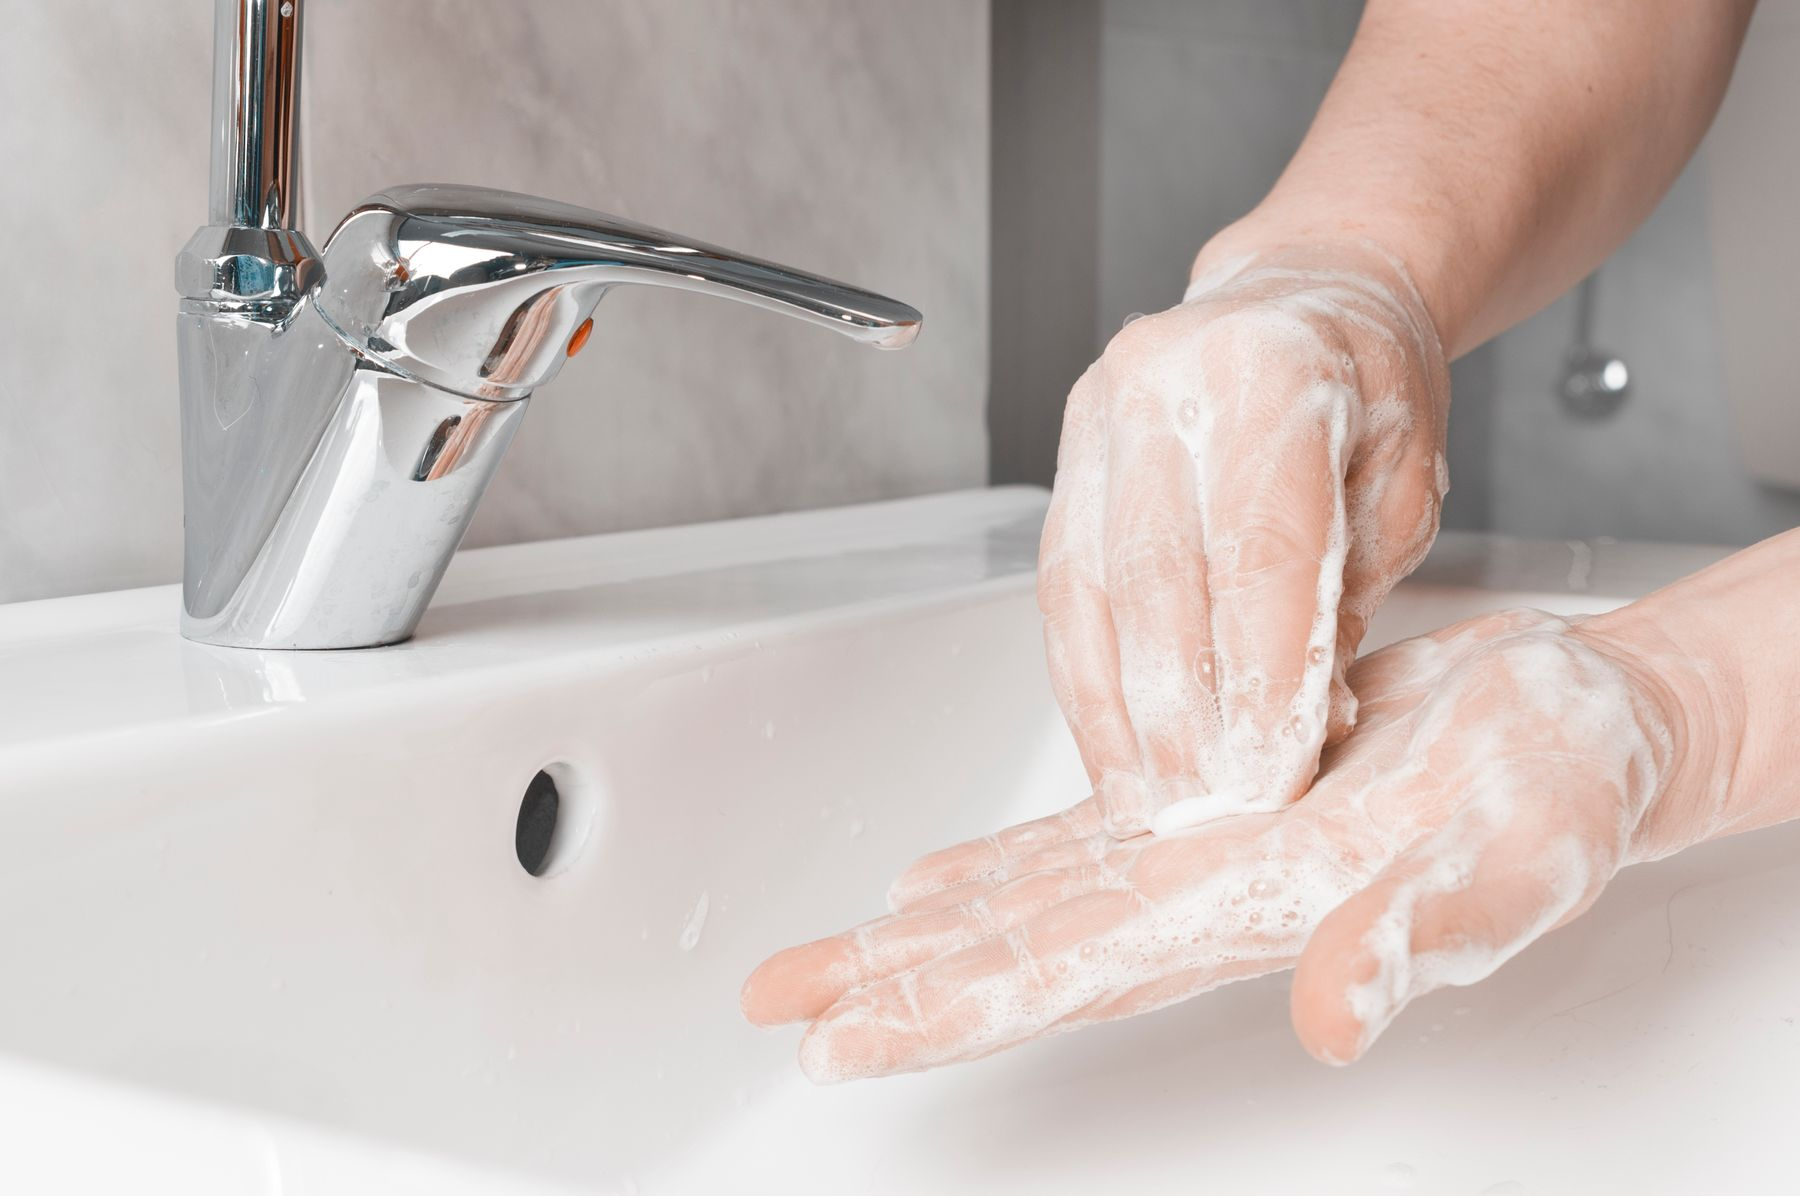 Step 2: person making bubbles with soap for hand washing